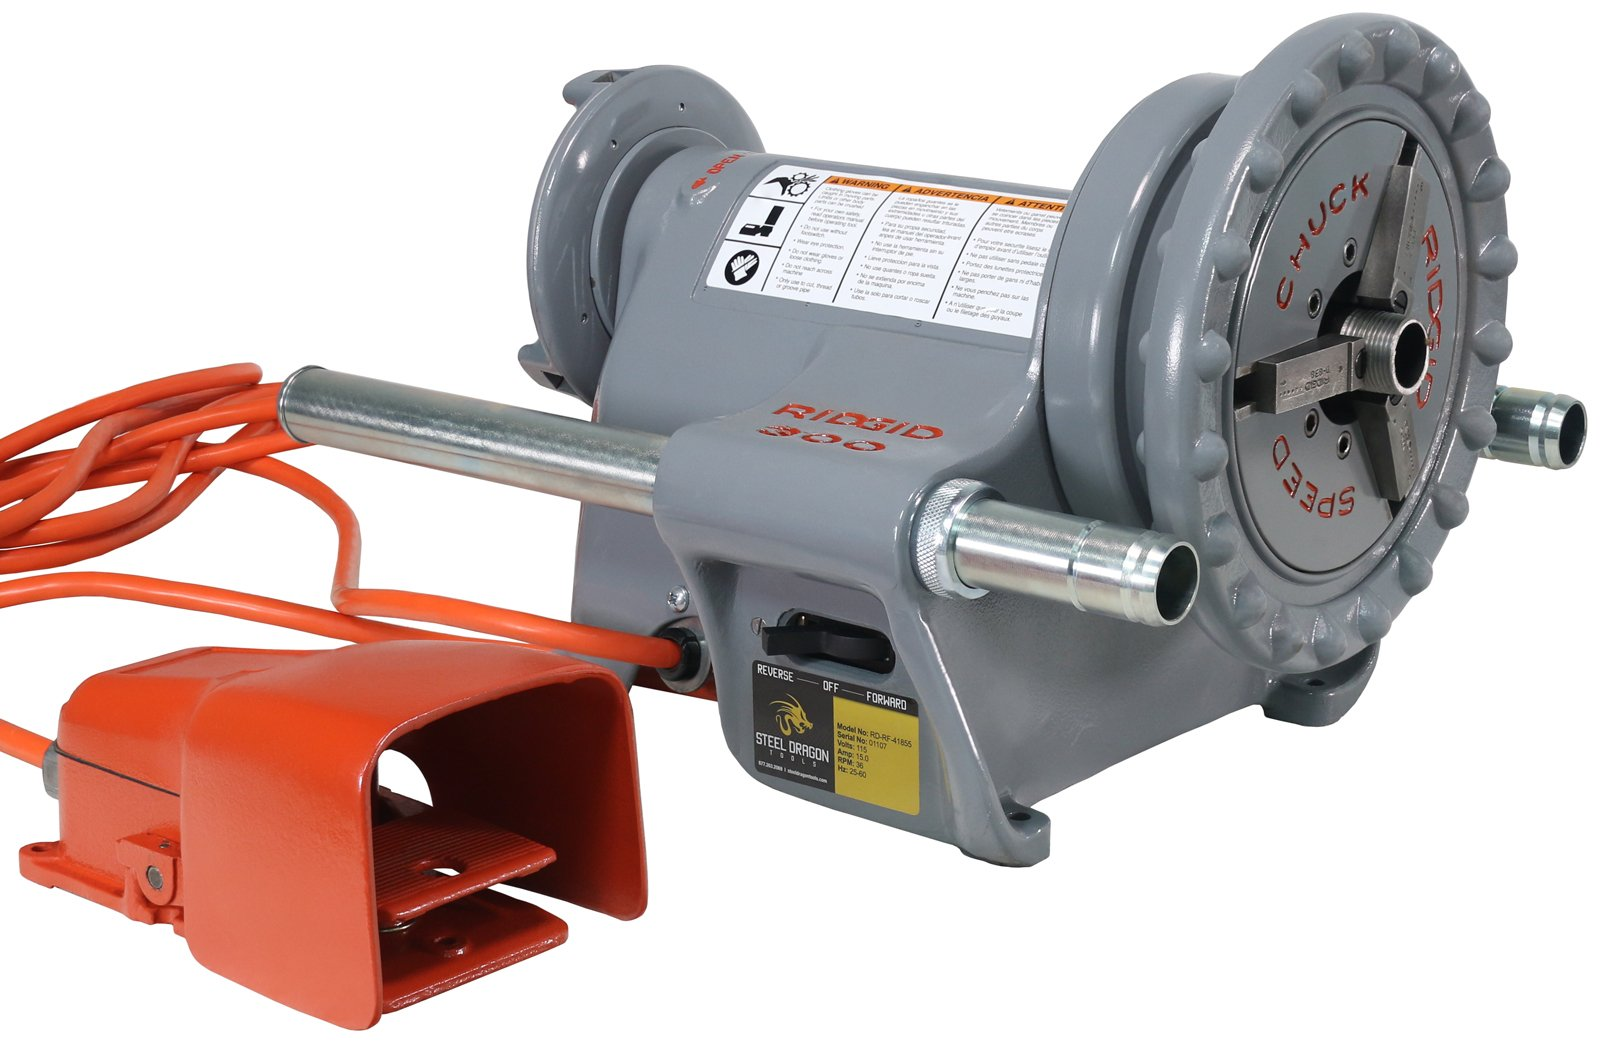 RIDGID 300 Power Drive 41855 Threading Machine with Foot Pedal (Reconditioned)